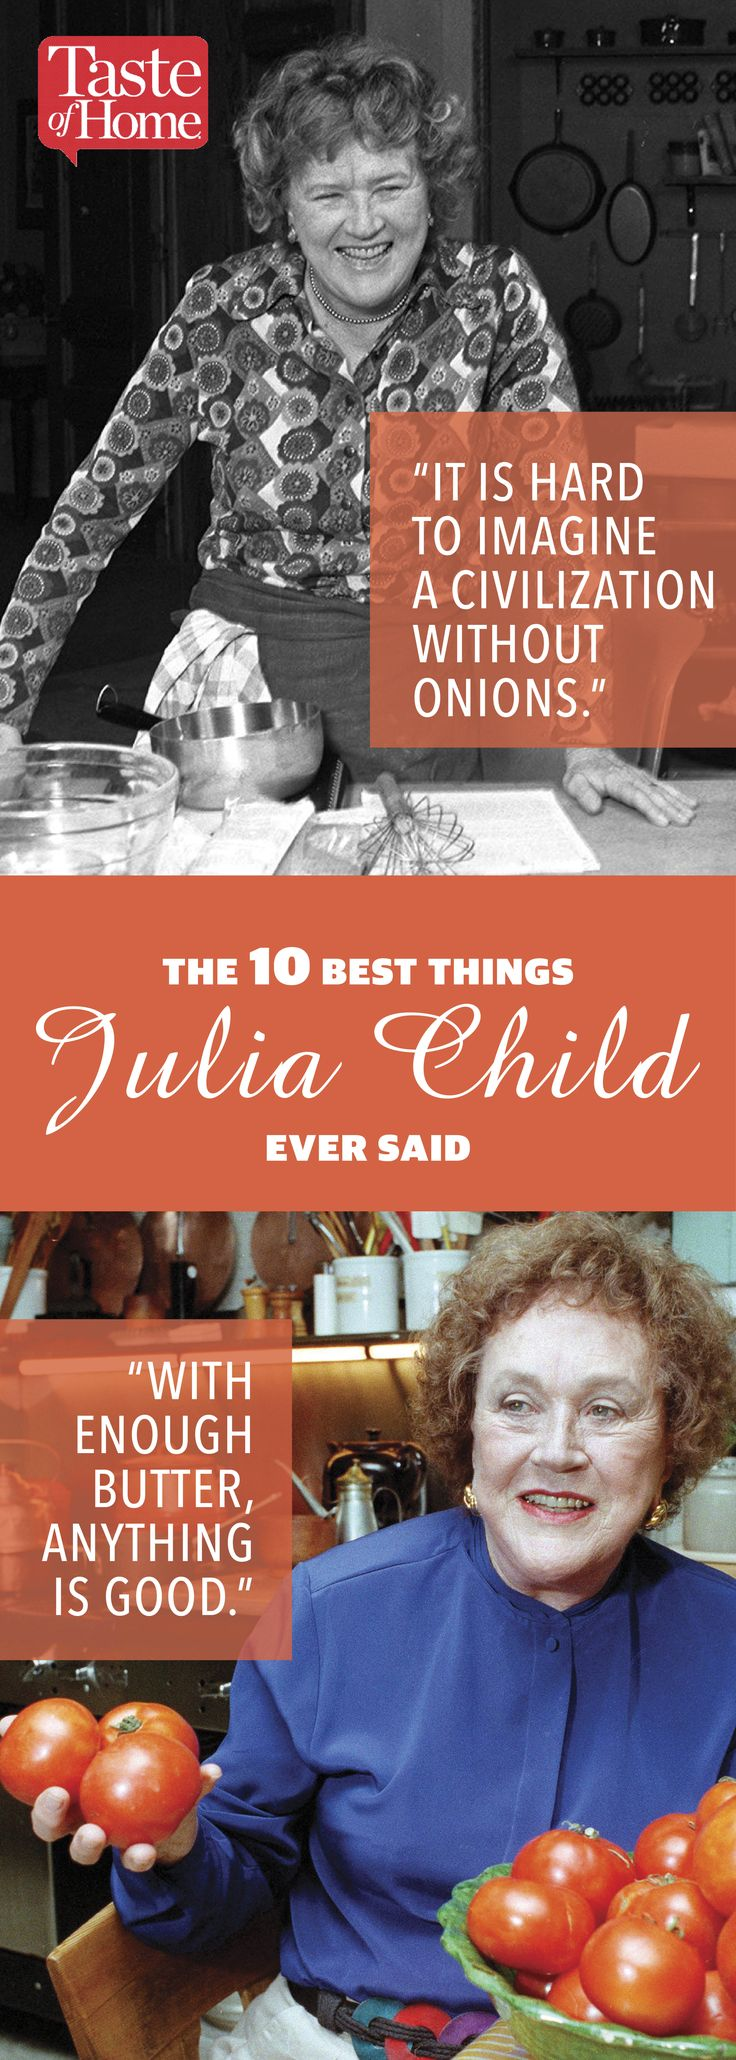 The 10 Best Things Julia Child Ever Said